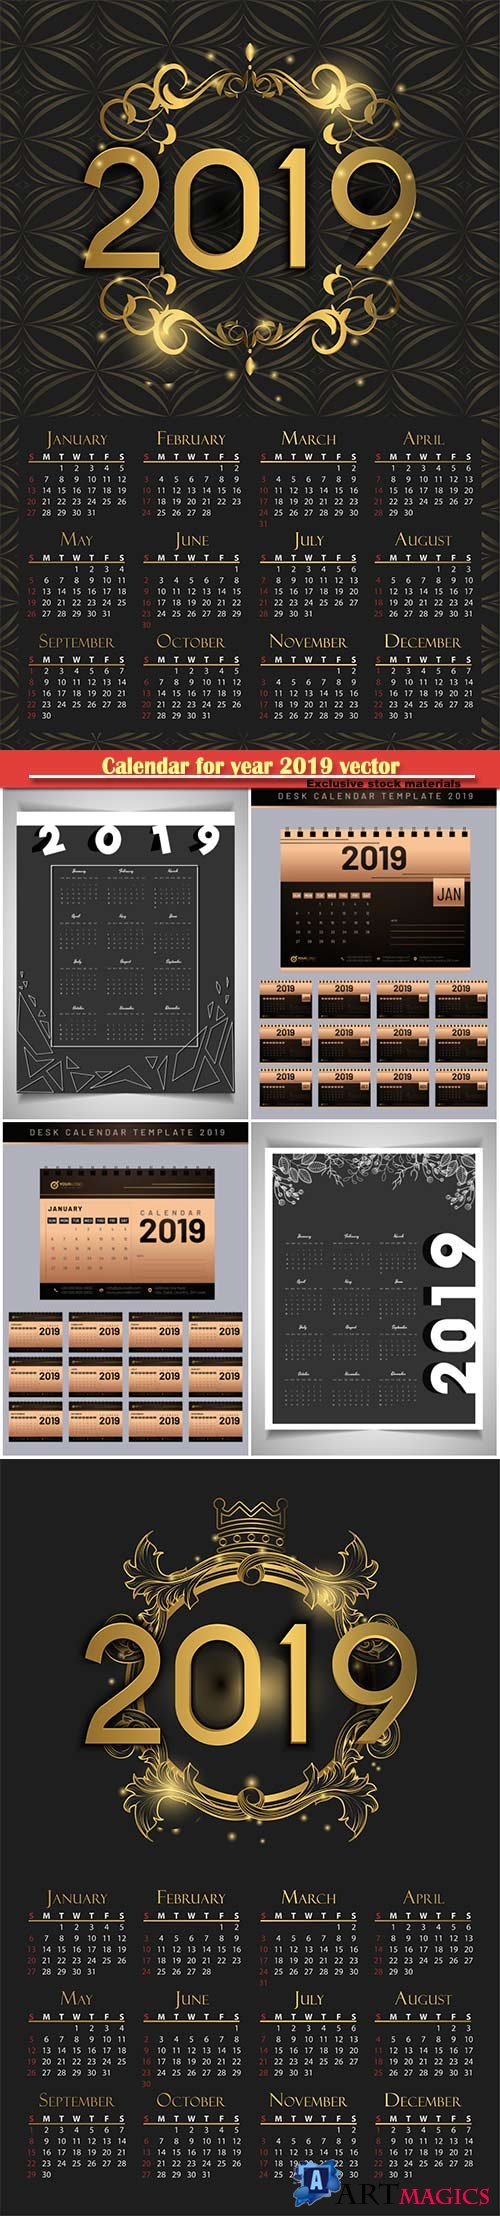 Calendar for year 2019 vector luxury concept with golden color